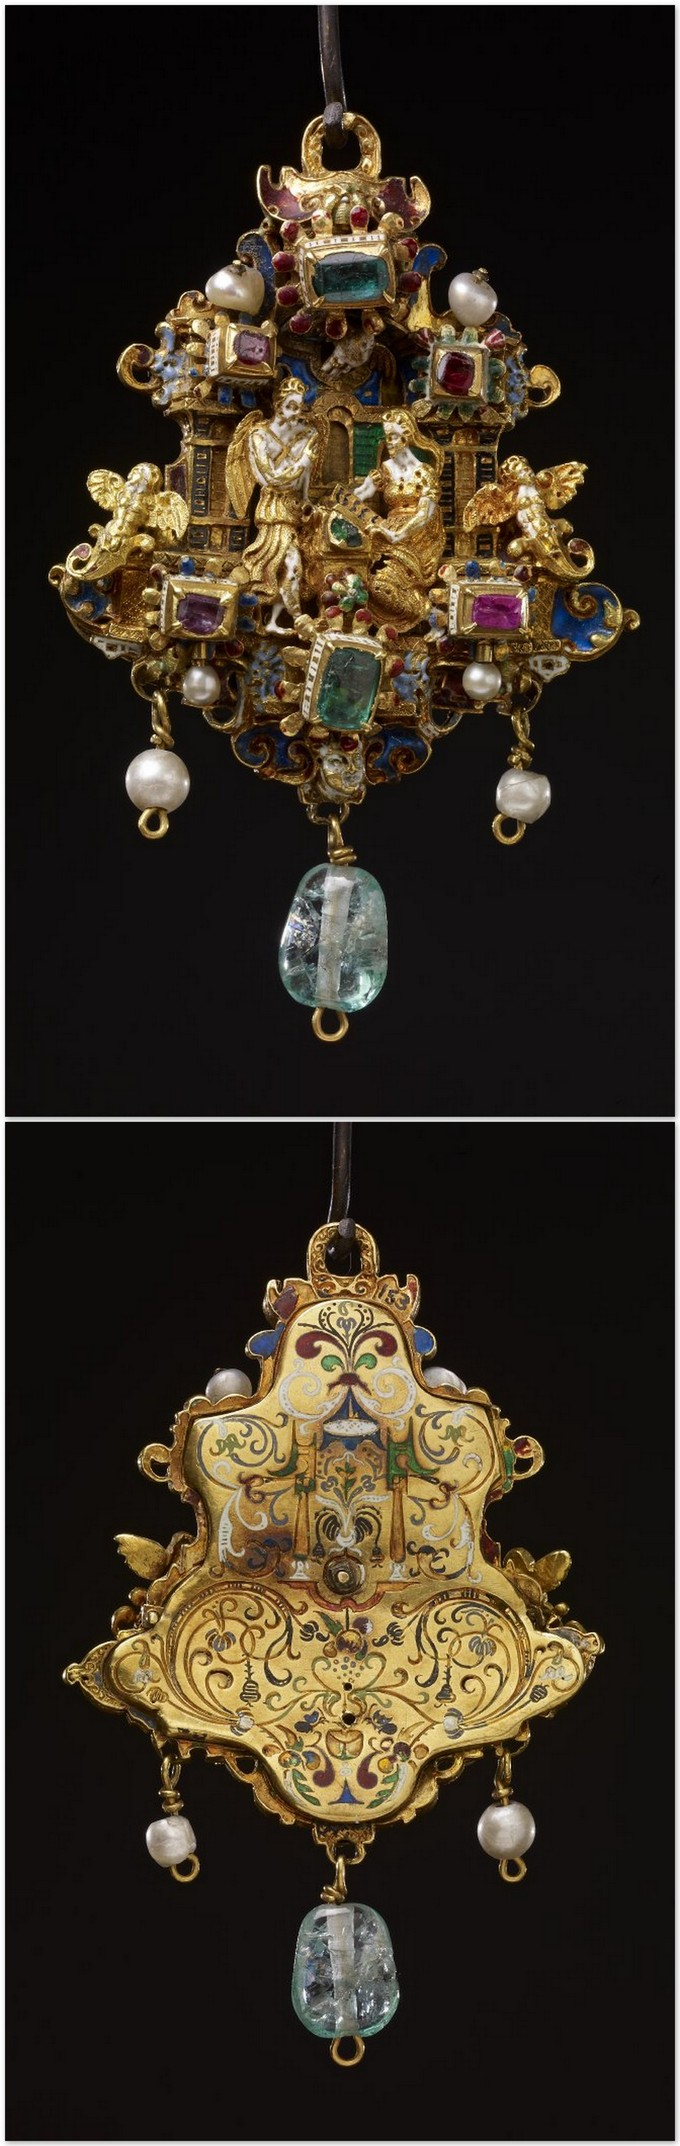 Pendant jewel; gold; centre: Annunciation, figures in full relief between two pilasters, at bases of which are two cherubs as terminal figures; emerald and two rubies above; similar arrangement below, in enamelled settings; background chased with scrolls and coated with opaque and translucent enamels; pendant beryl and two pearls; back plate engraved with floral scrolls, etc.; chalice at bottom, all filled with coloured enamels. Germany 1551-1575.